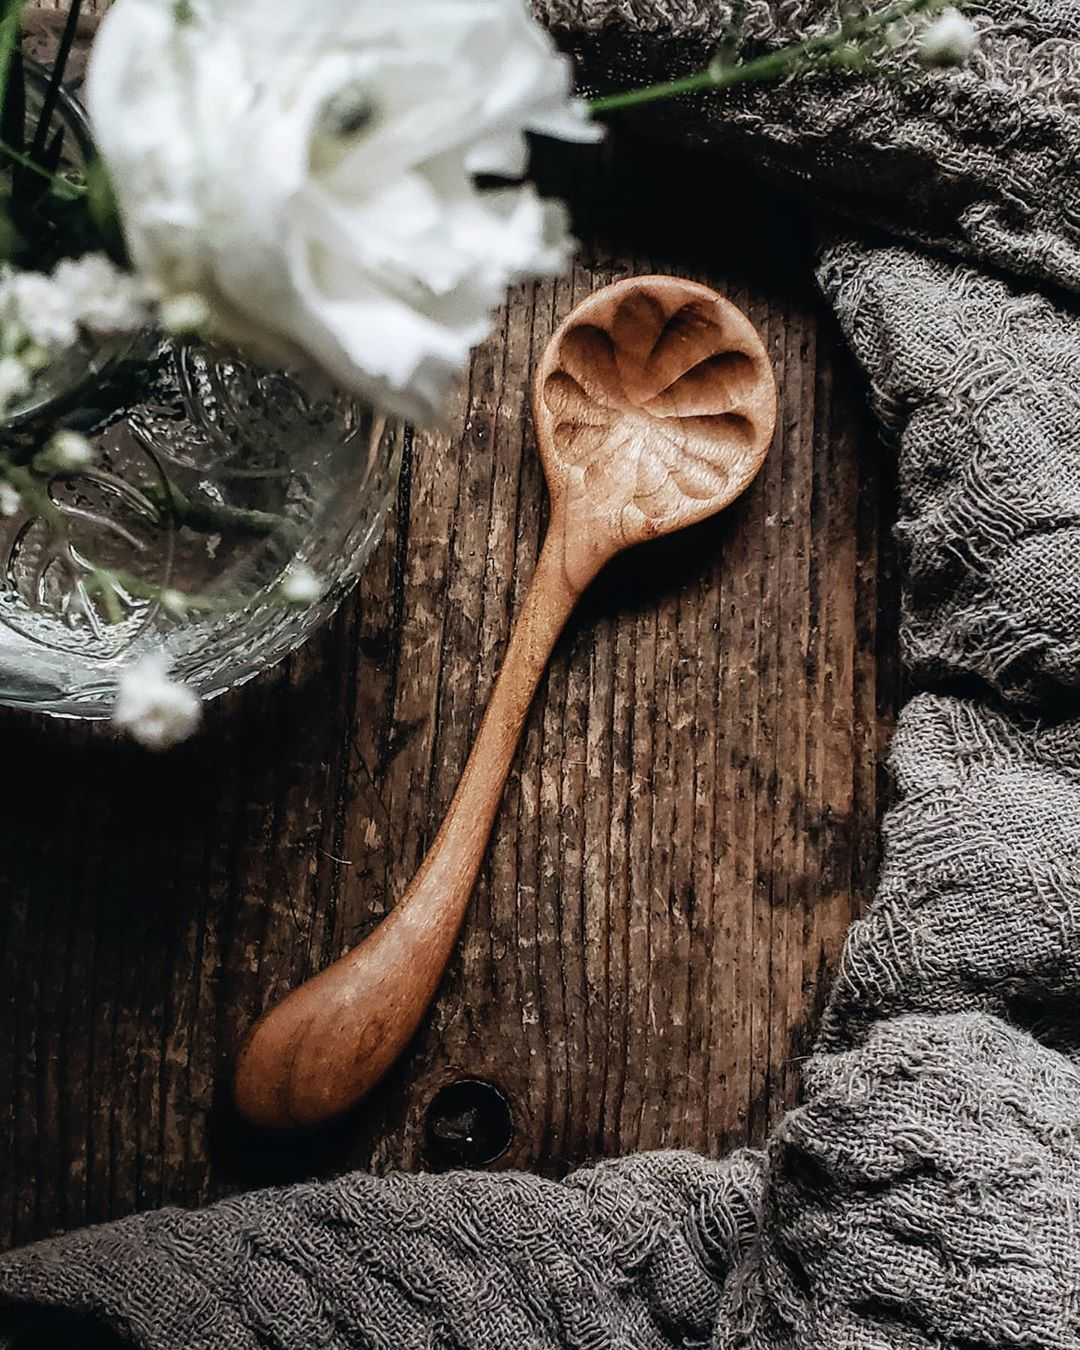 Hand Carved Wooden Dreamware Mini Serving Spoon Made From Cherry Wood By The Polder Family Of Old World Kitchen In 2020 Old World Market Cherry Wood Old World Kitchens